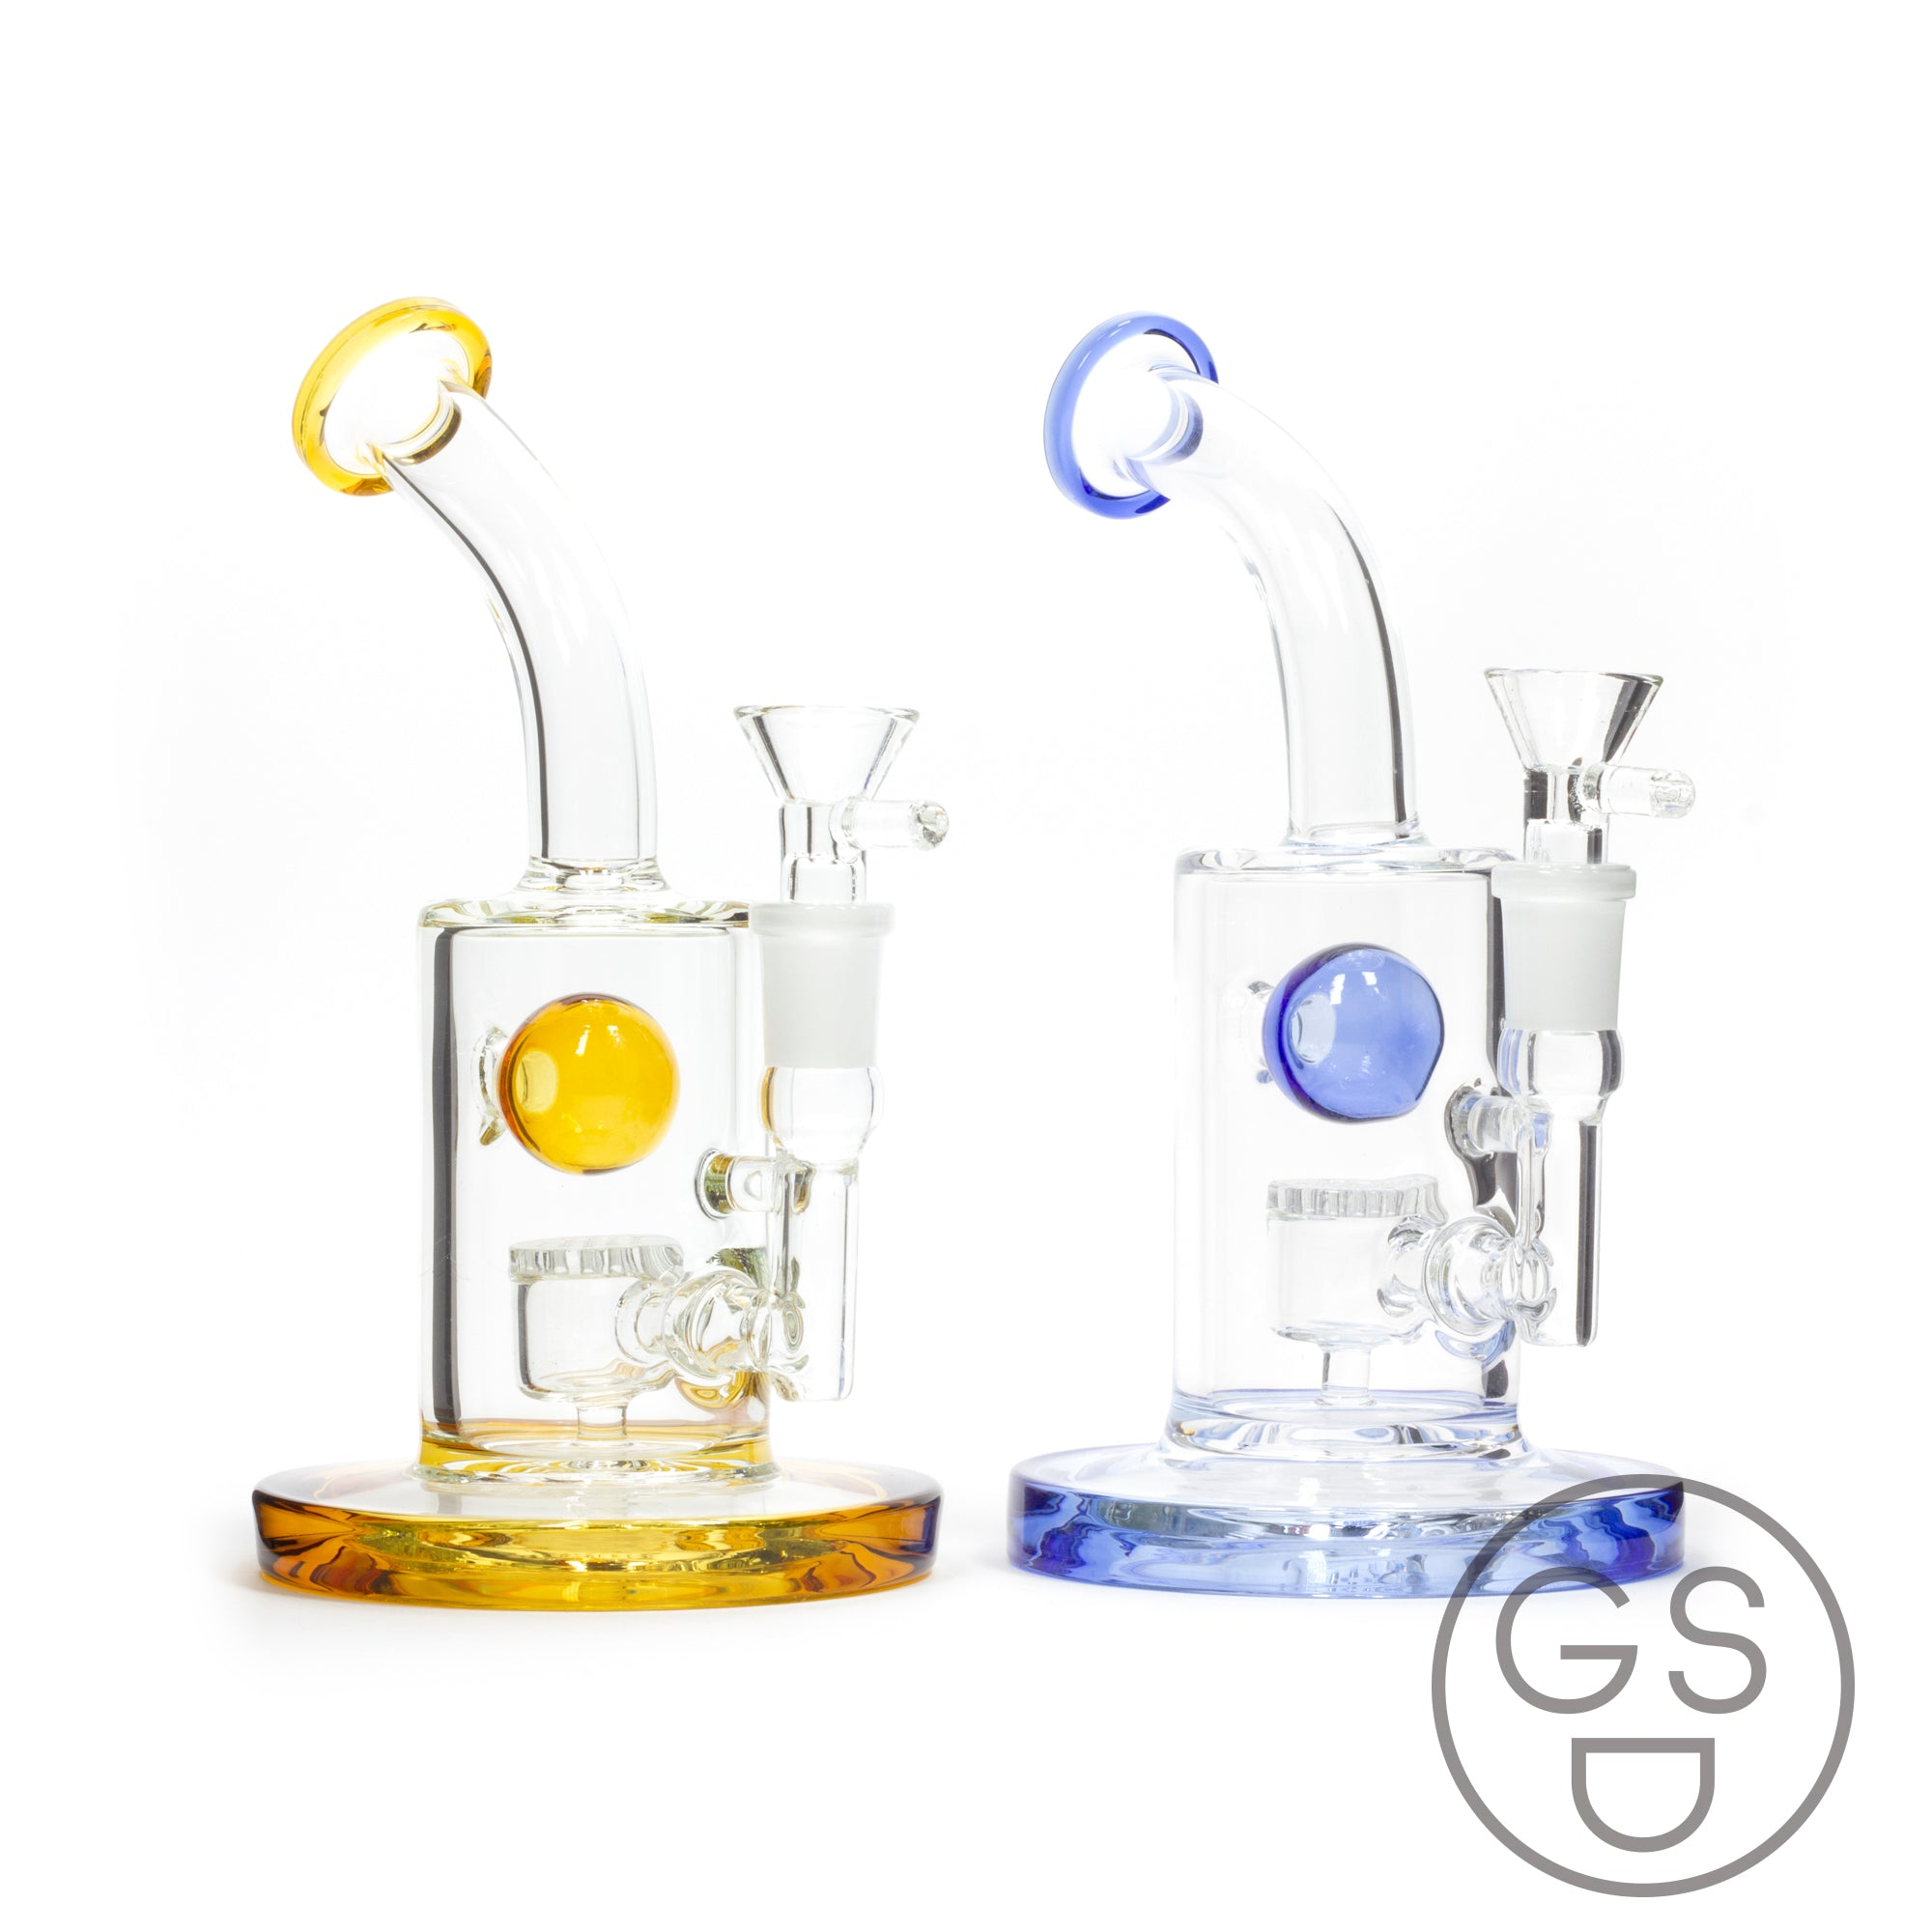 Mystical Sphere Waterpipe